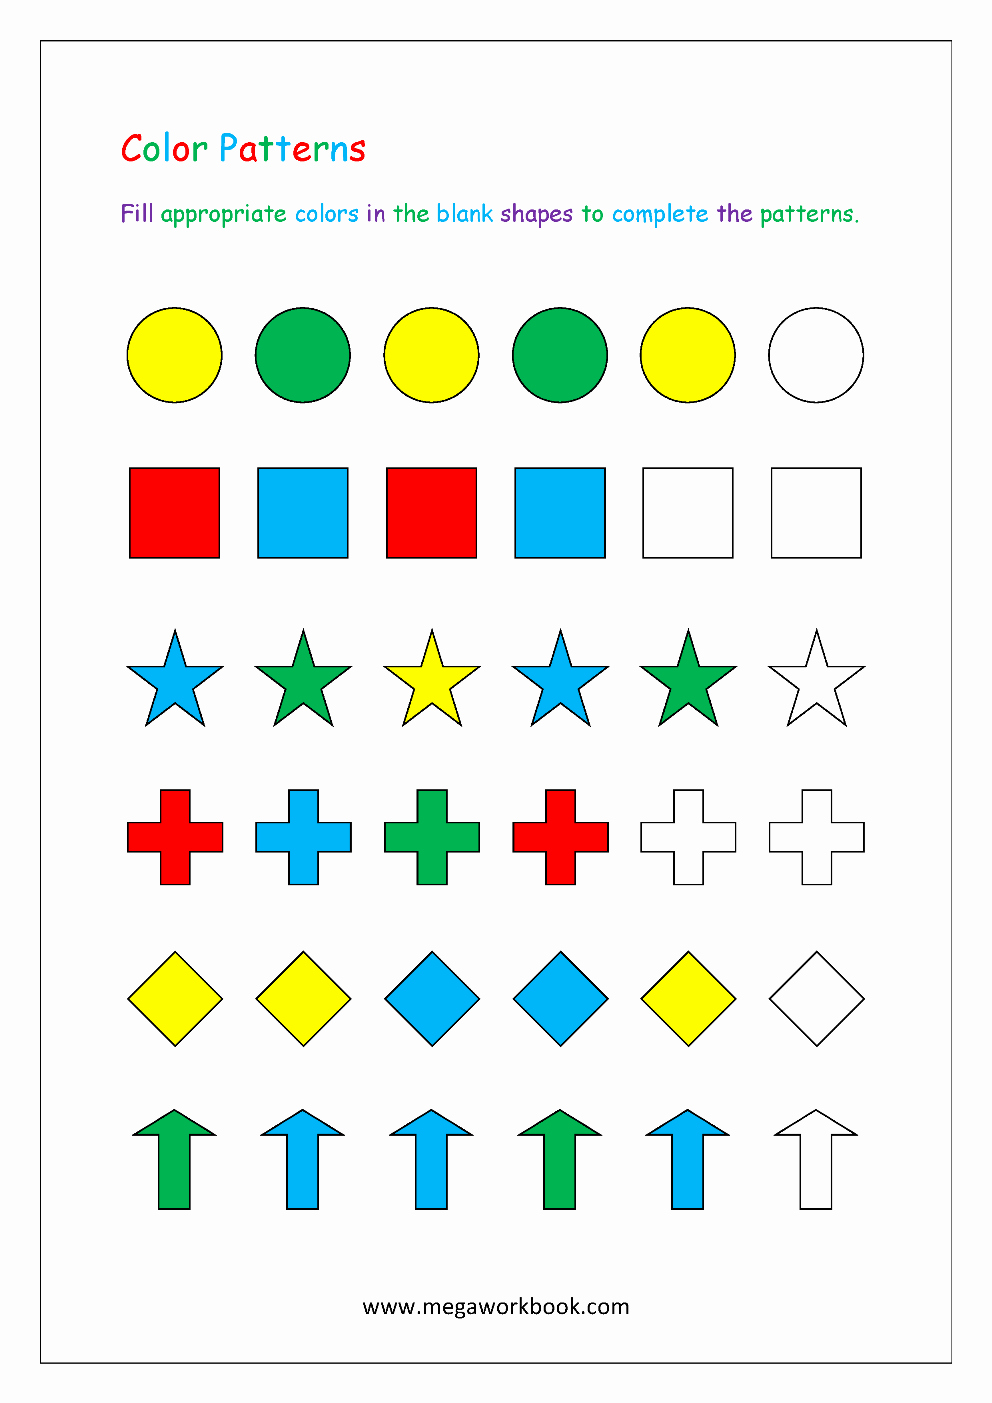 Patterns Worksheet for Kindergarten Awesome Pattern Worksheets for Kindergarten Color Patterns